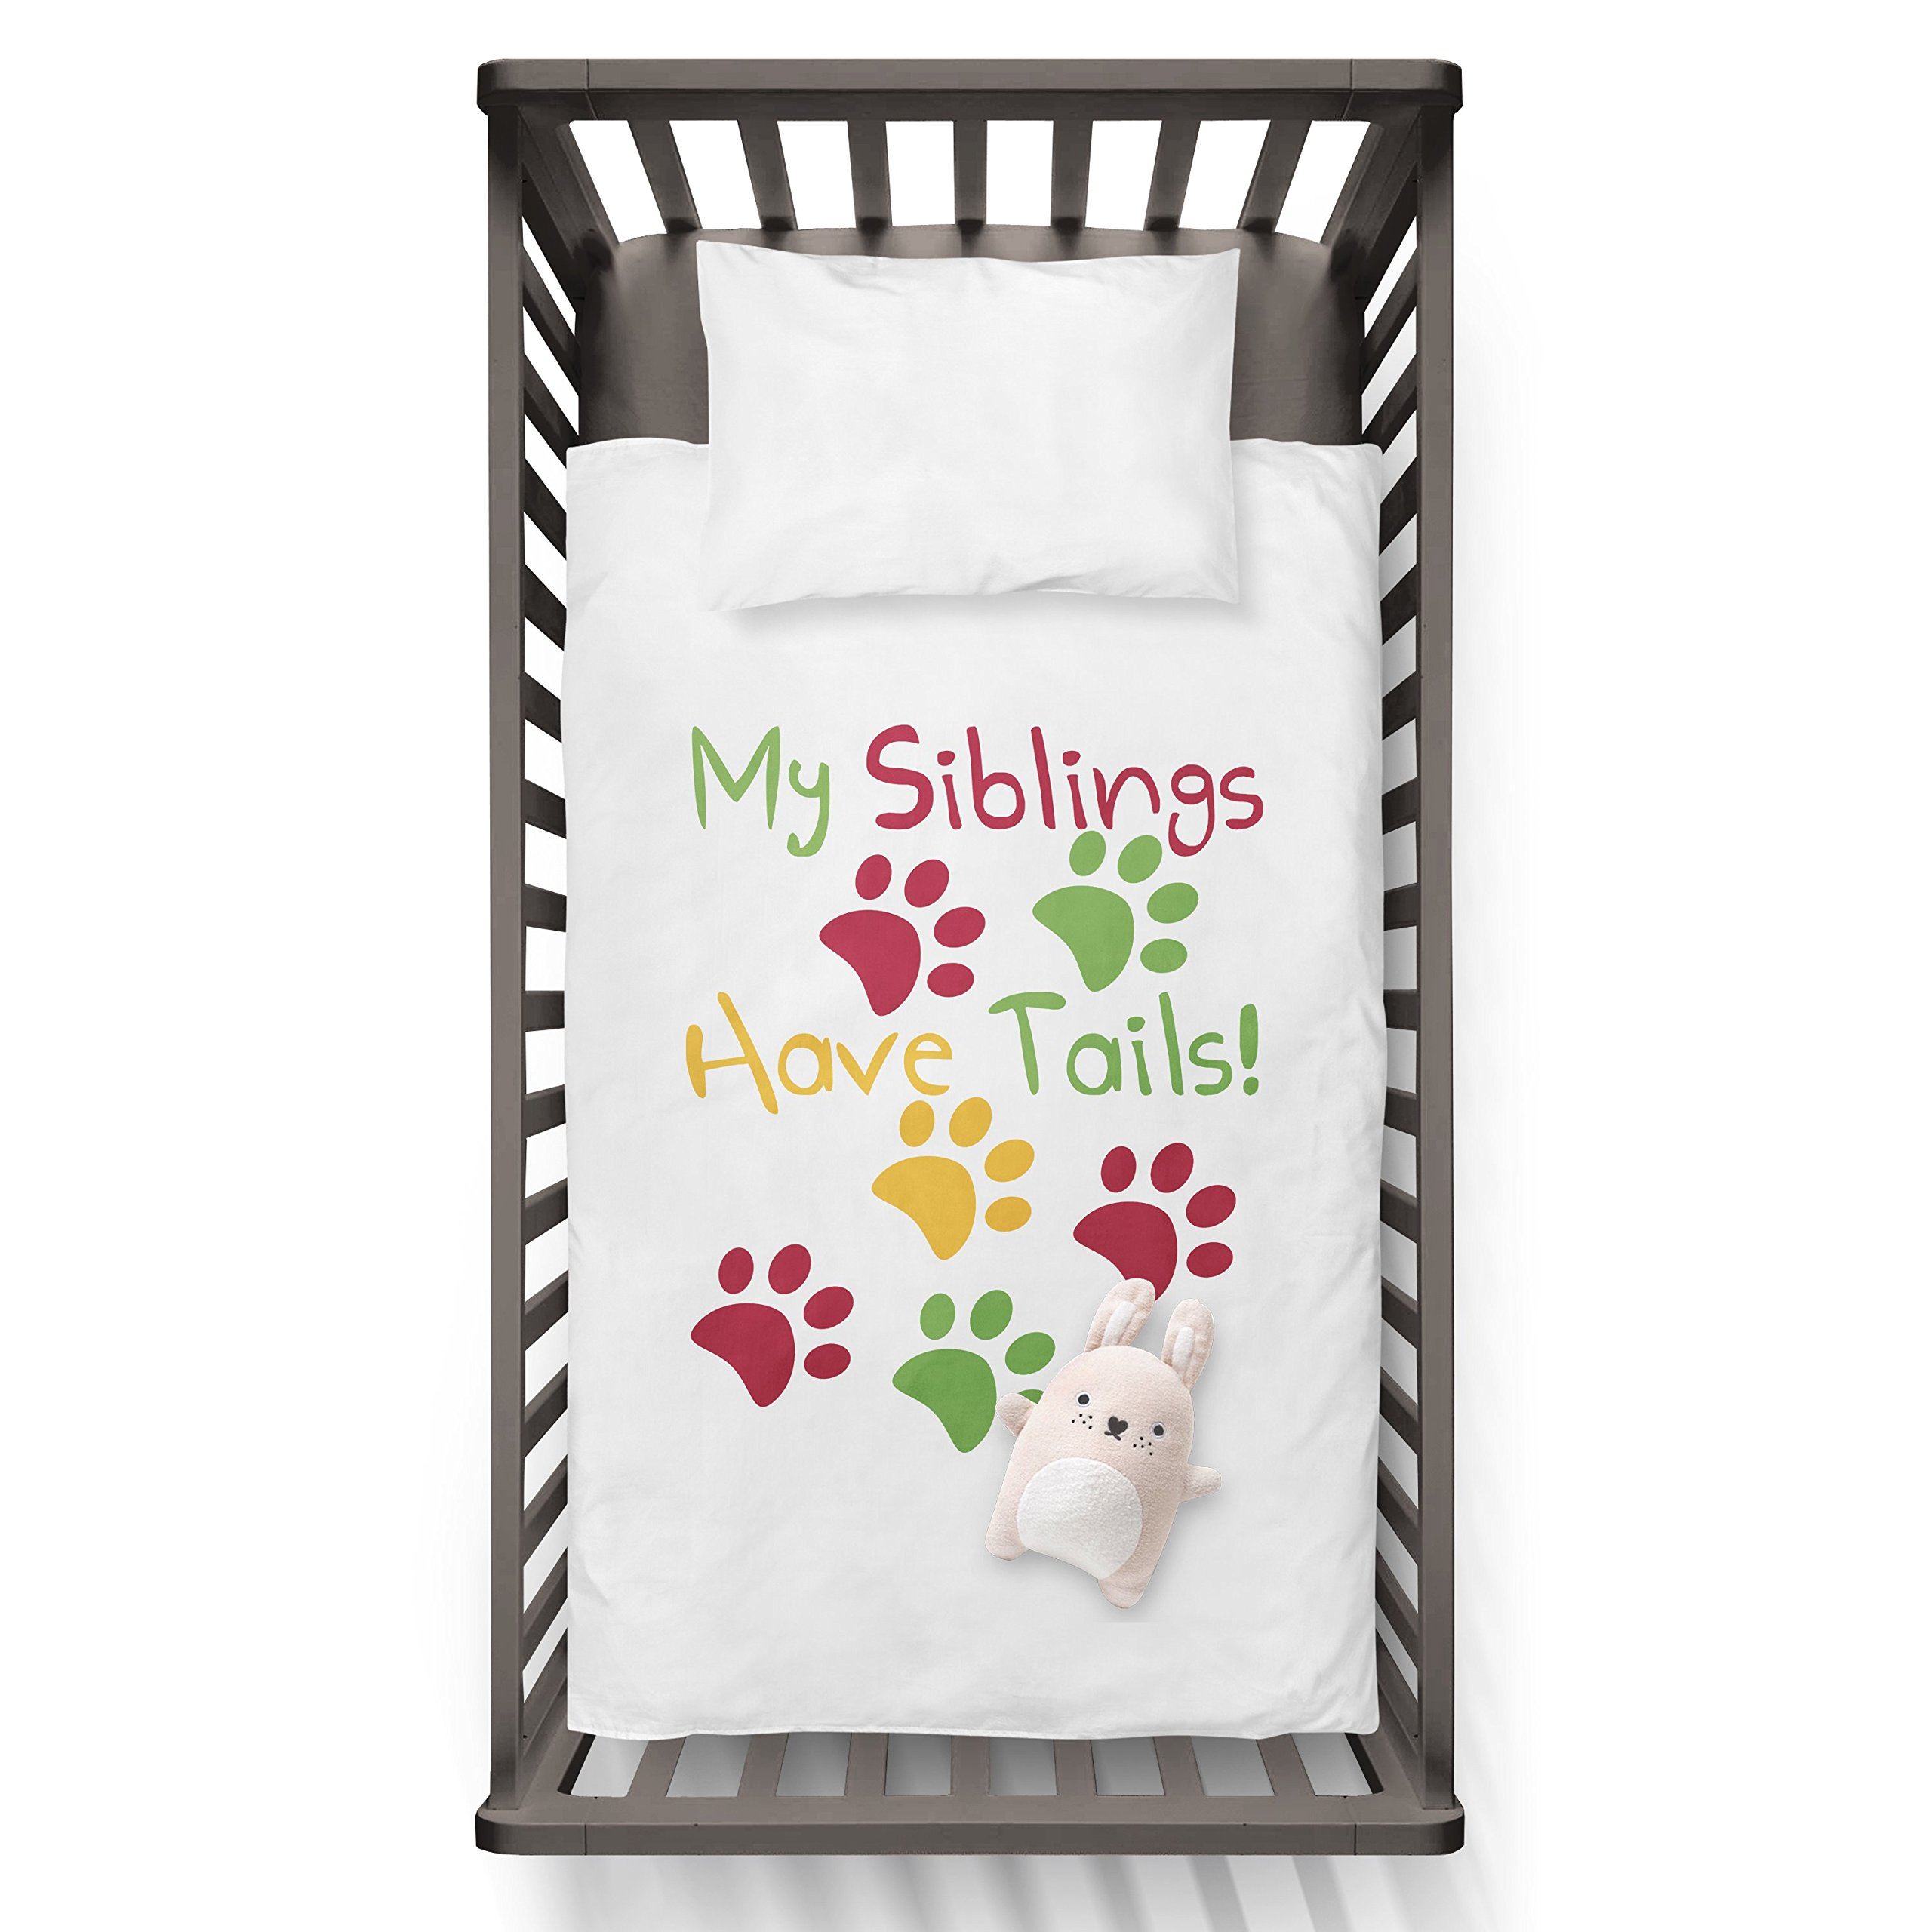 My Siblings Have Tails Funny Humor Hip Baby Duvet /Pillow set,Toddler Duvet,Oeko-Tex,Personalized duvet and pillow,Oraganic,gift